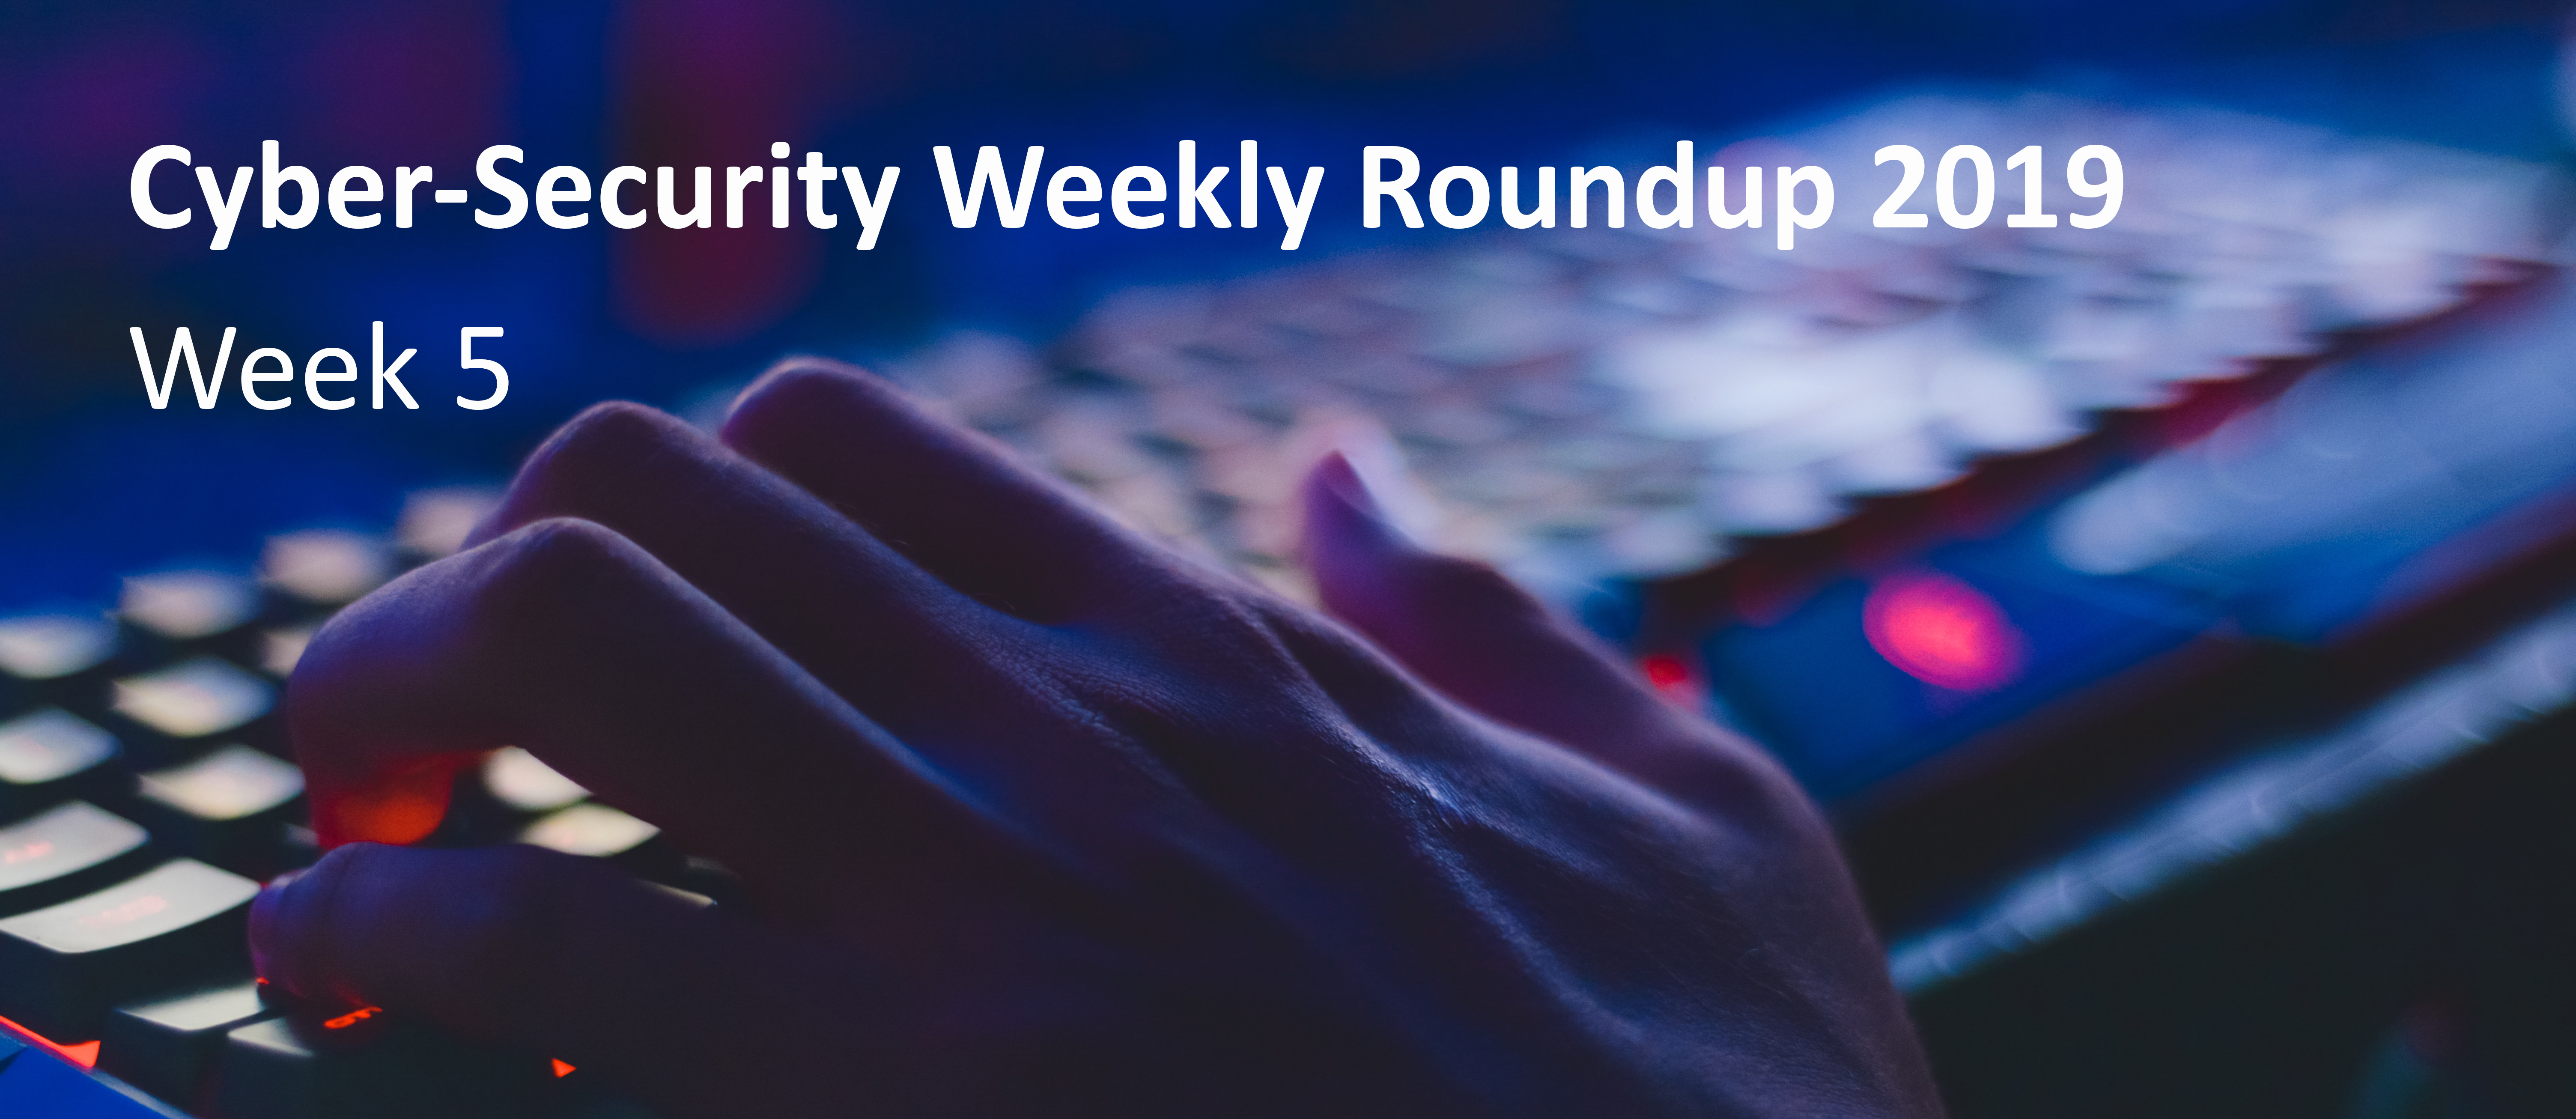 Cyber Attack Weekly Round Up wk 5